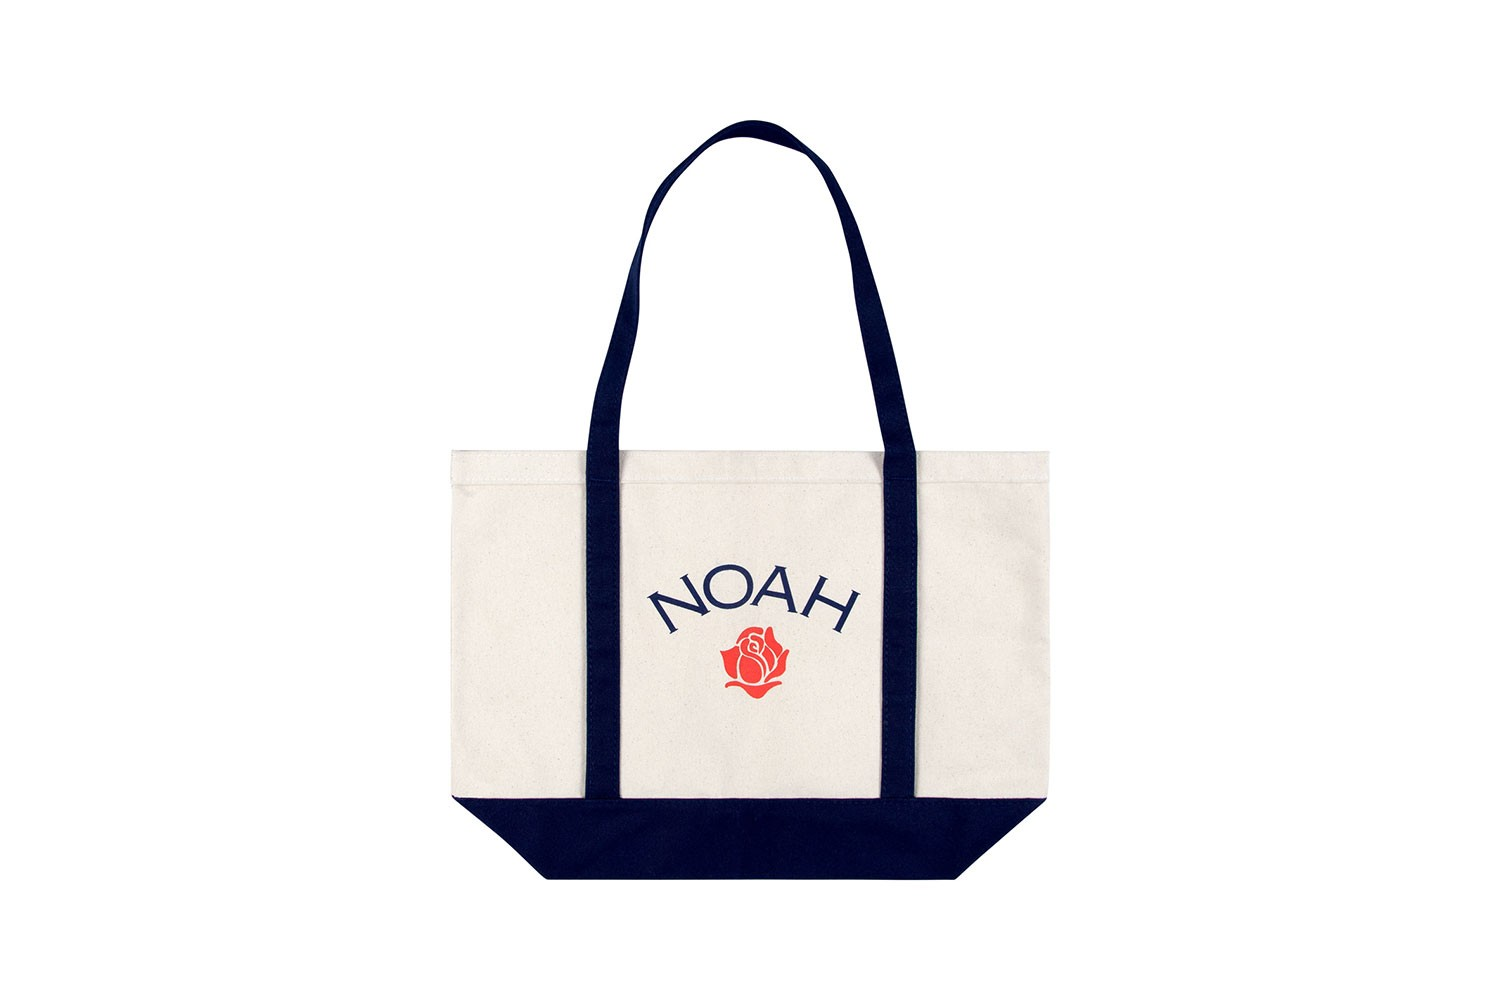 noah fall winter rose logo hoodies tote bags streetwear